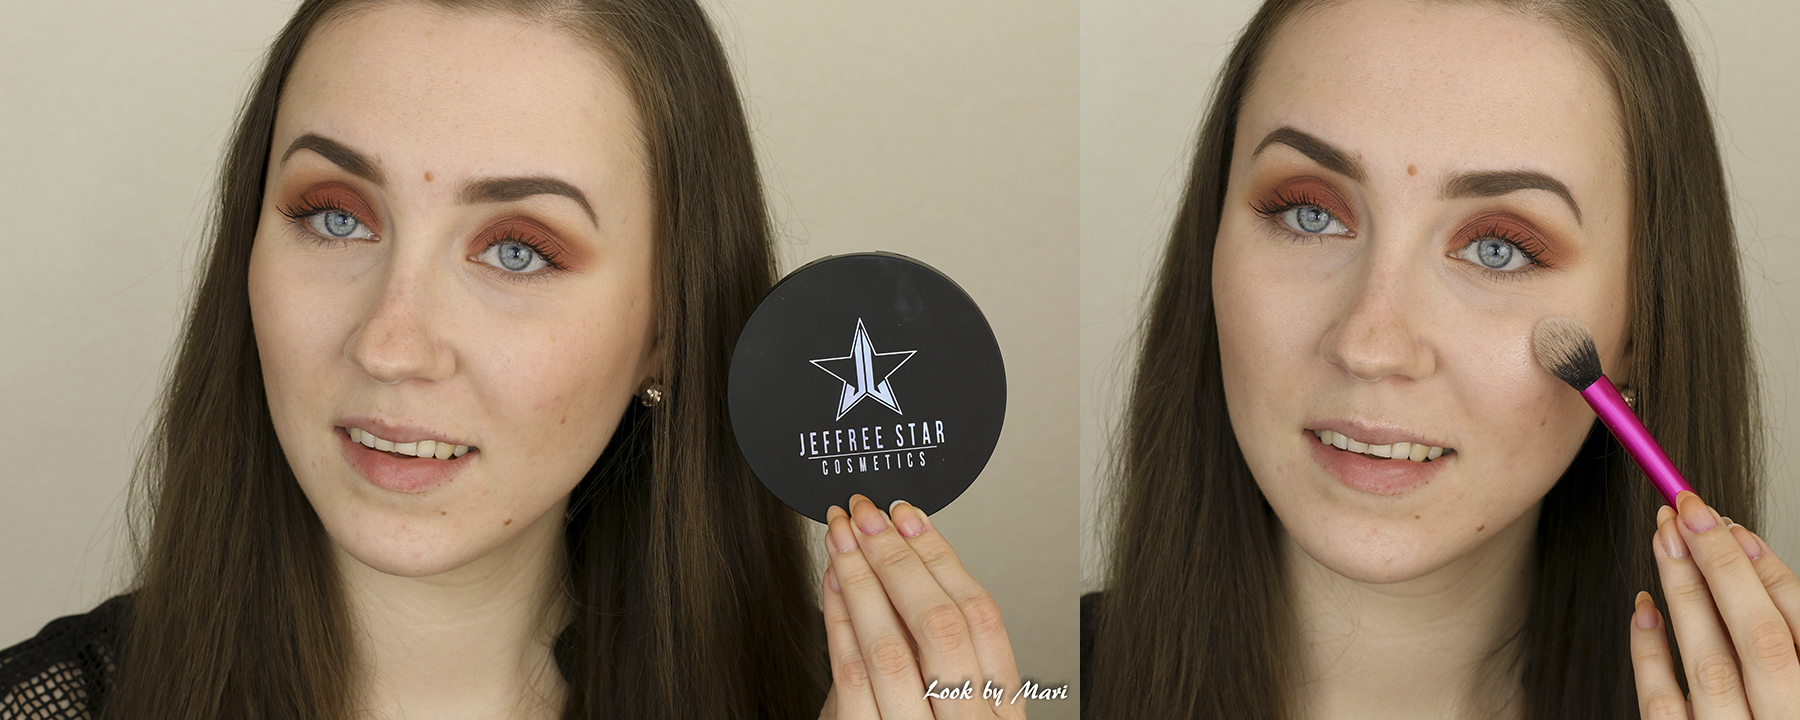 14 jeffree star manny mua eclipse skin frost highlighter kokemuksia oletkaunis.fi review